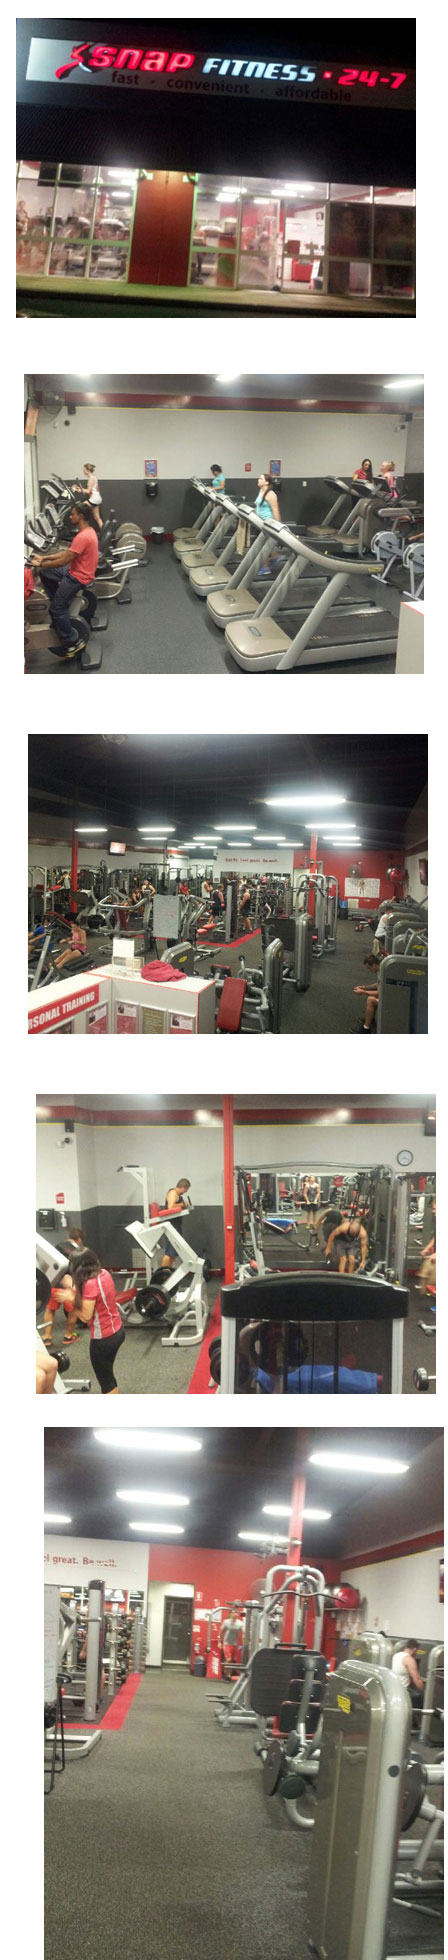 Snap Fitness - 24 hour gym Morayfield  Morayfield